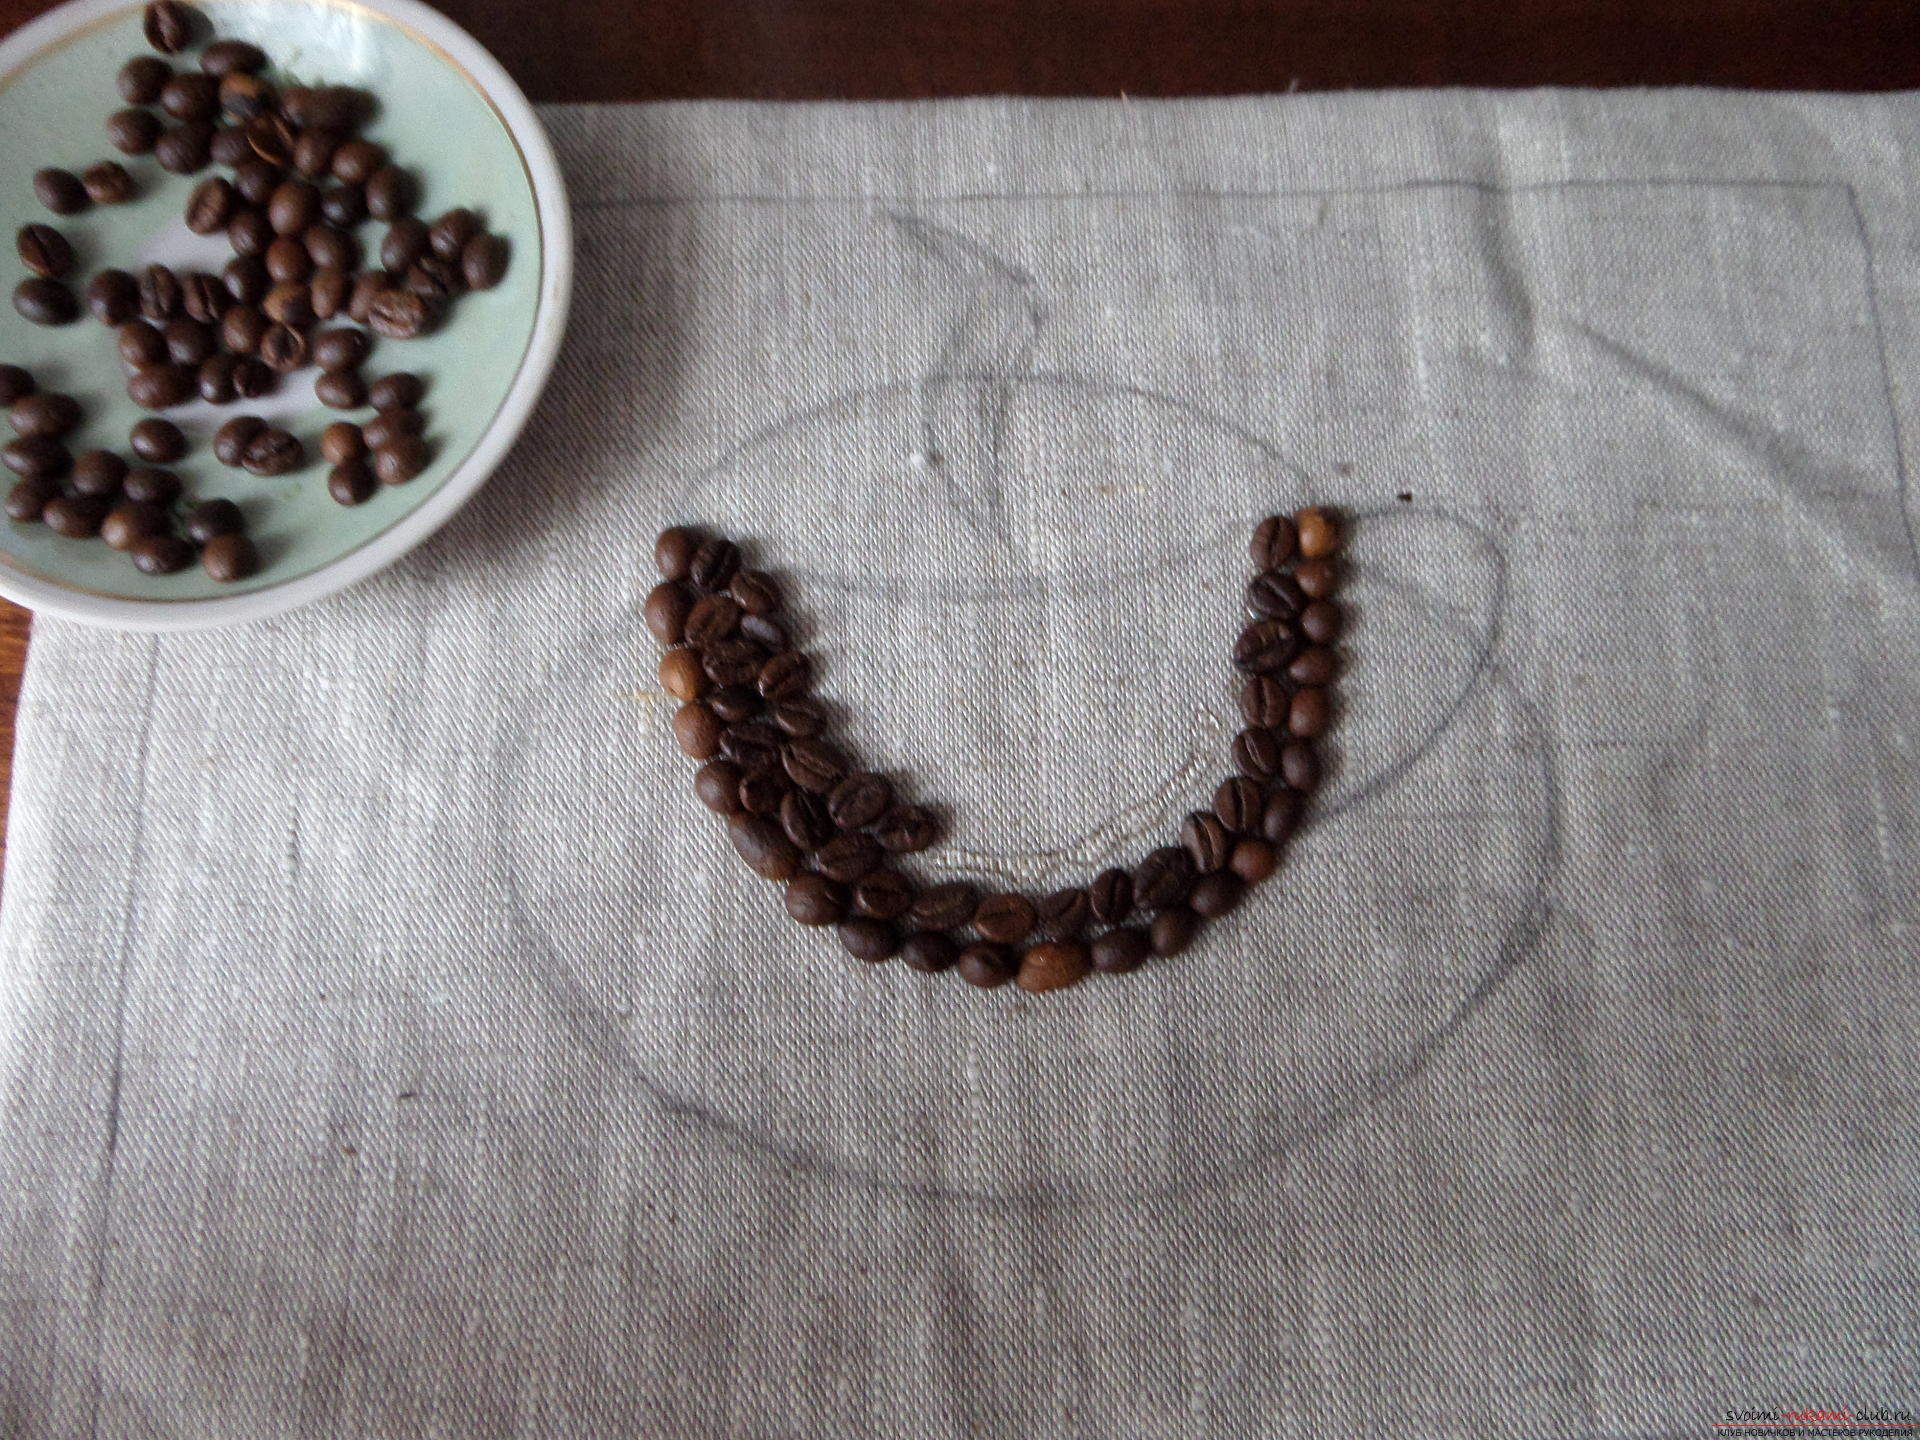 This master class with a photo and description will teach you how to make coffee paintings from coffee beans for the kitchen .. Photo # 22